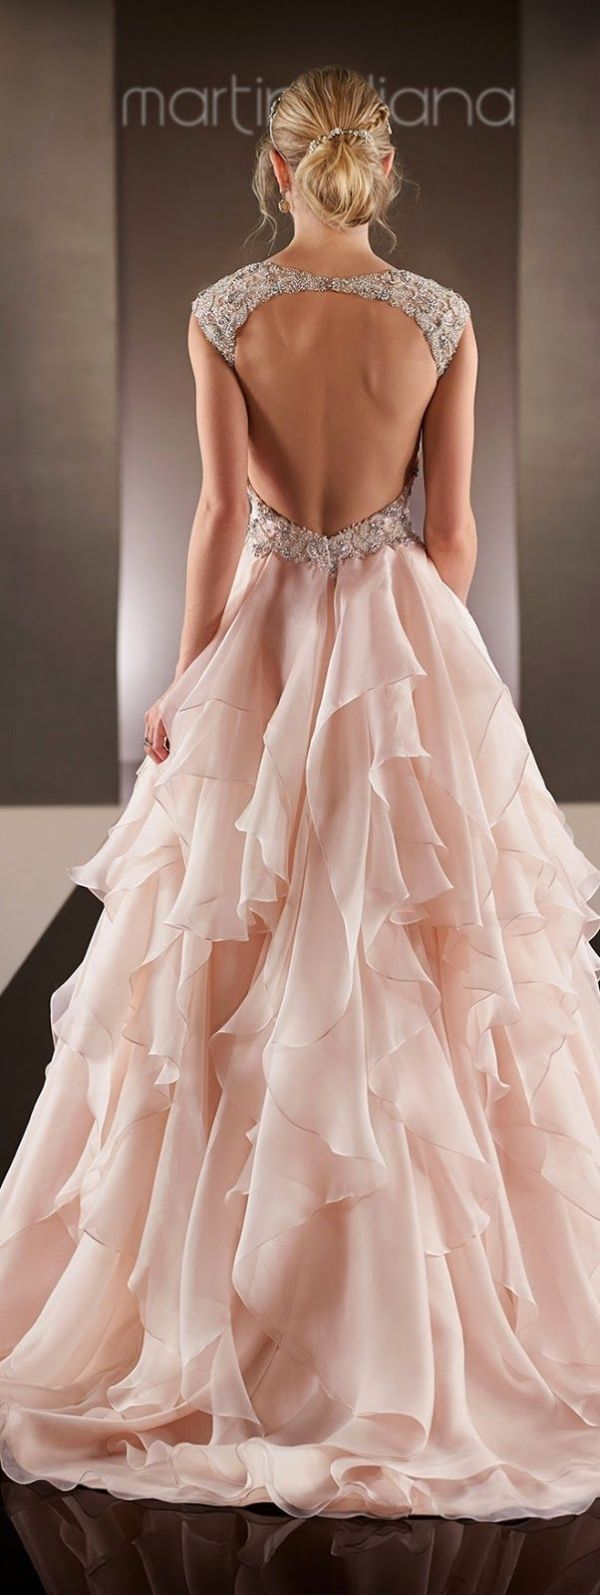 25 Prom Dresses You\'re Sure to Fall in Love with This Year ...